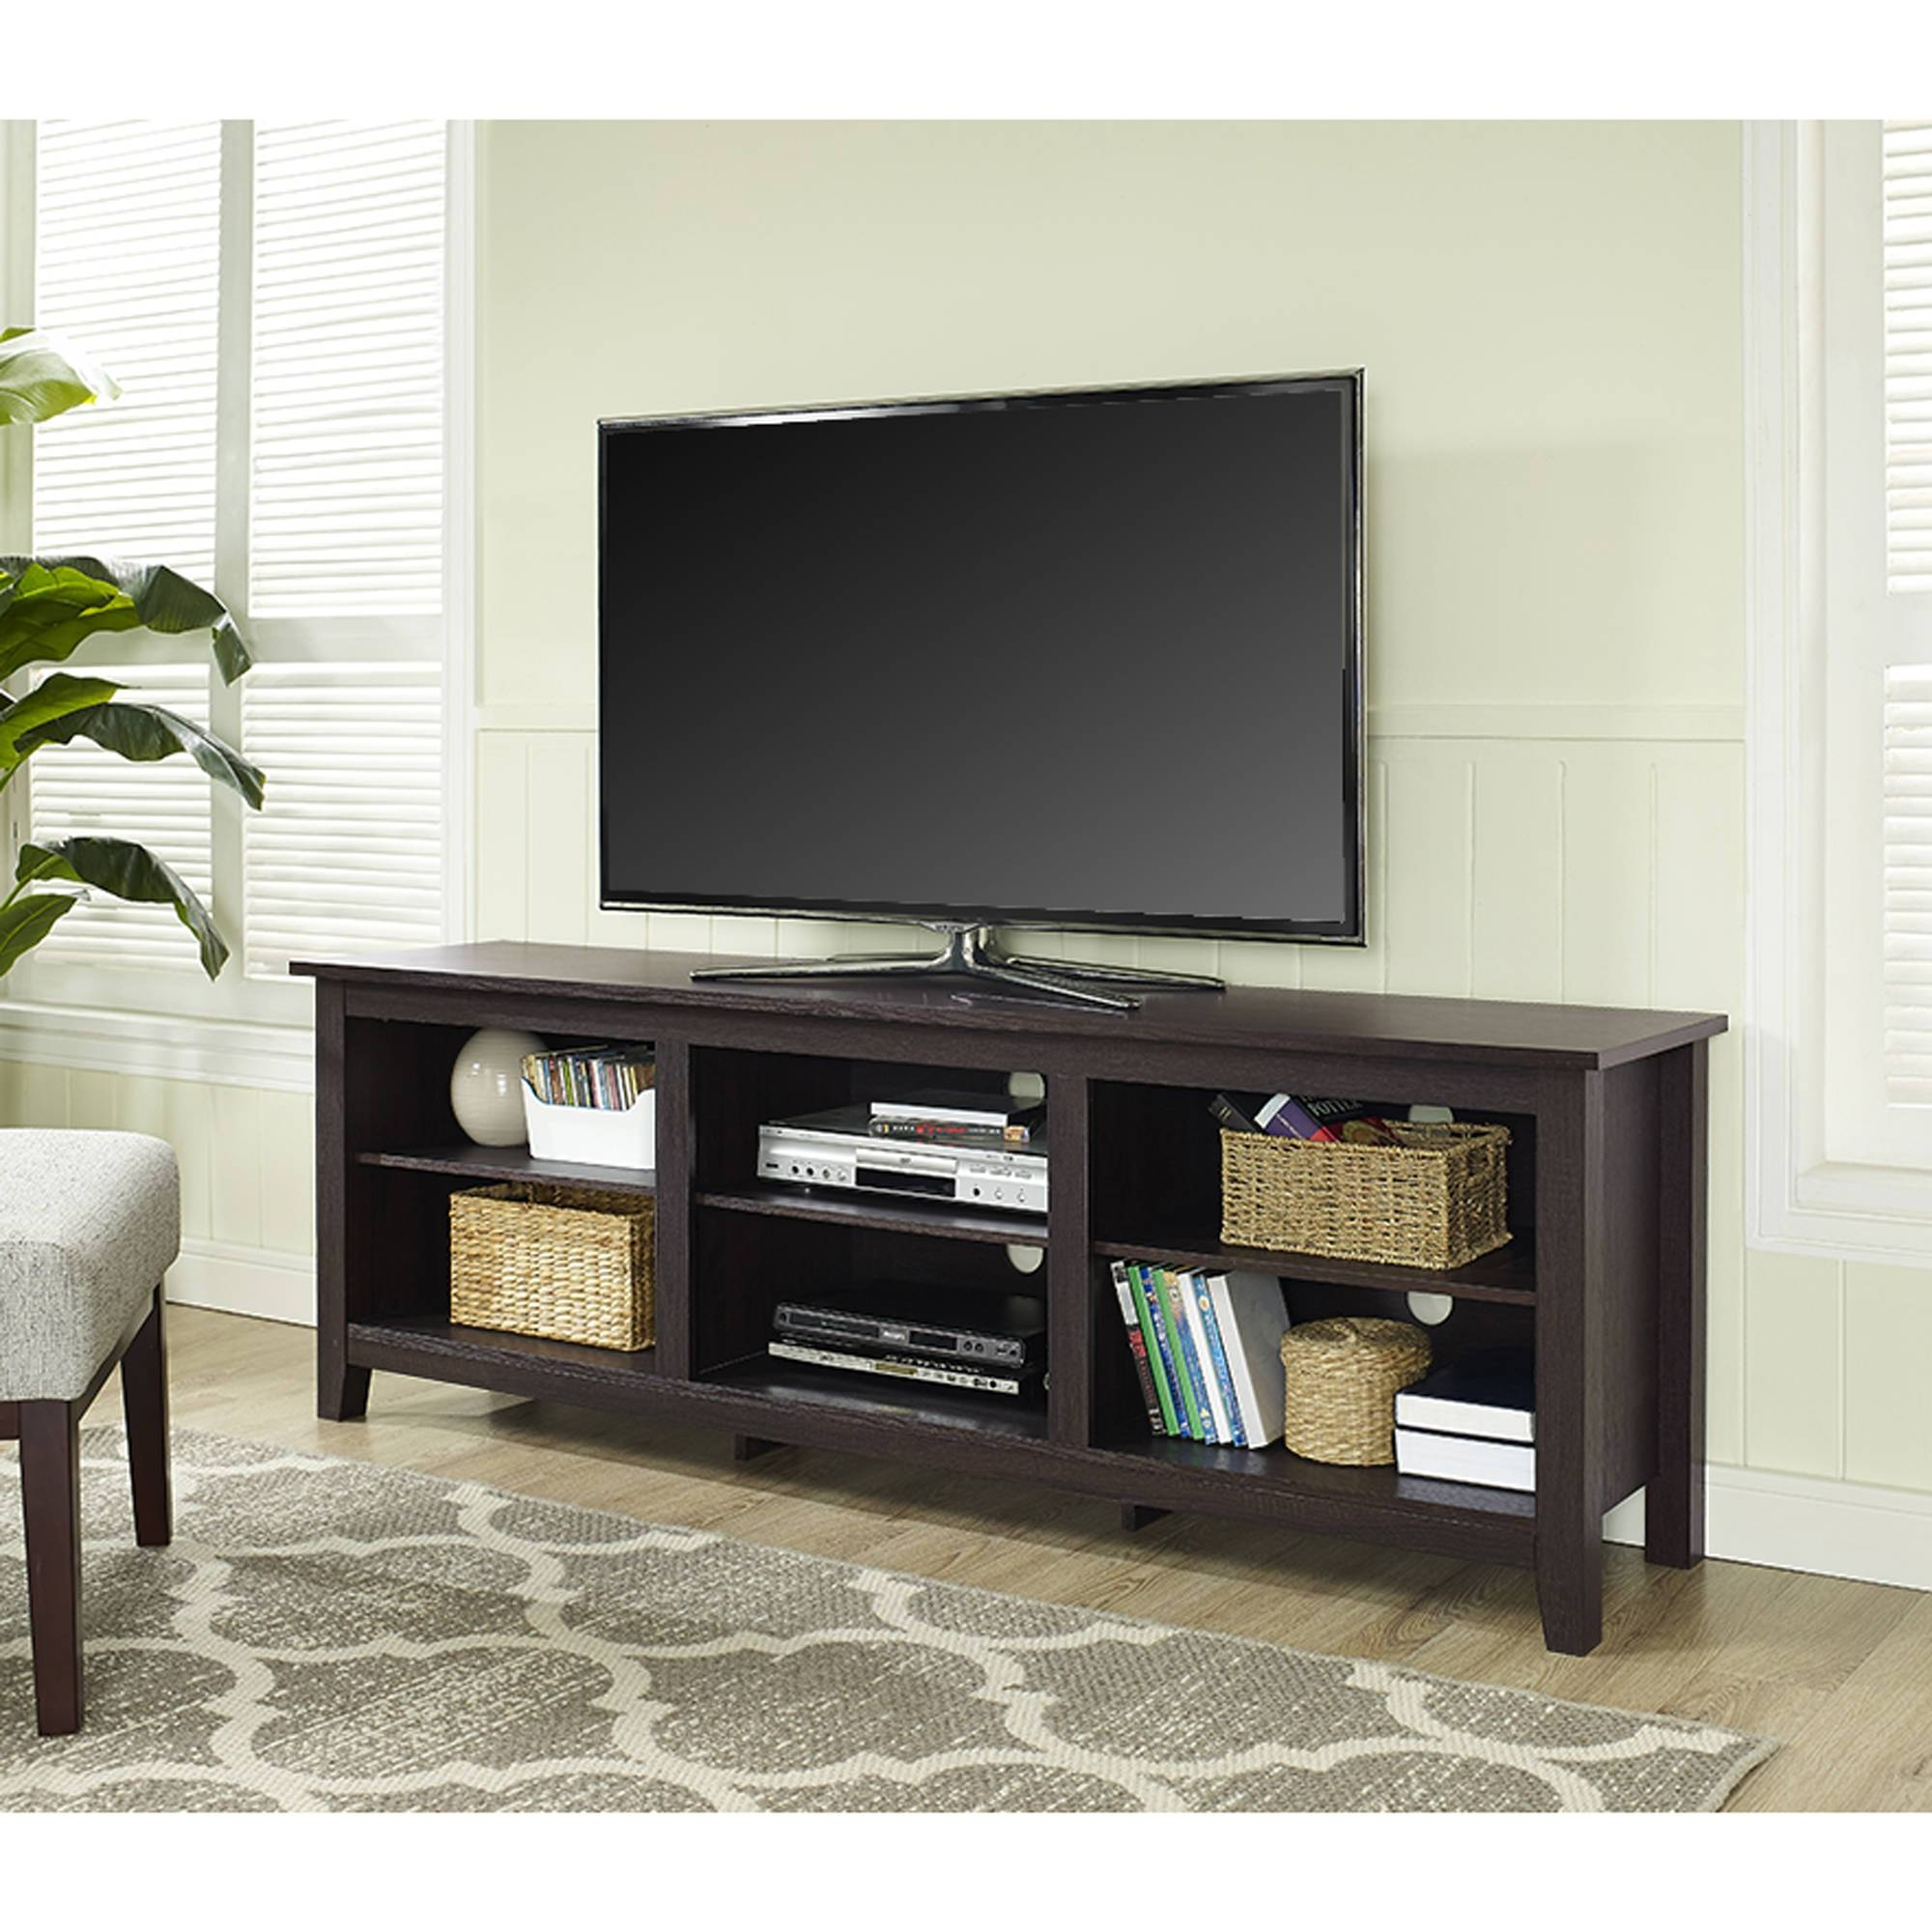 "Whalen 3-In-1 Black Tv Console For Tvs Up To 70"", Black Glass with regard to 24 Inch Tall Tv Stands (Image 15 of 15)"